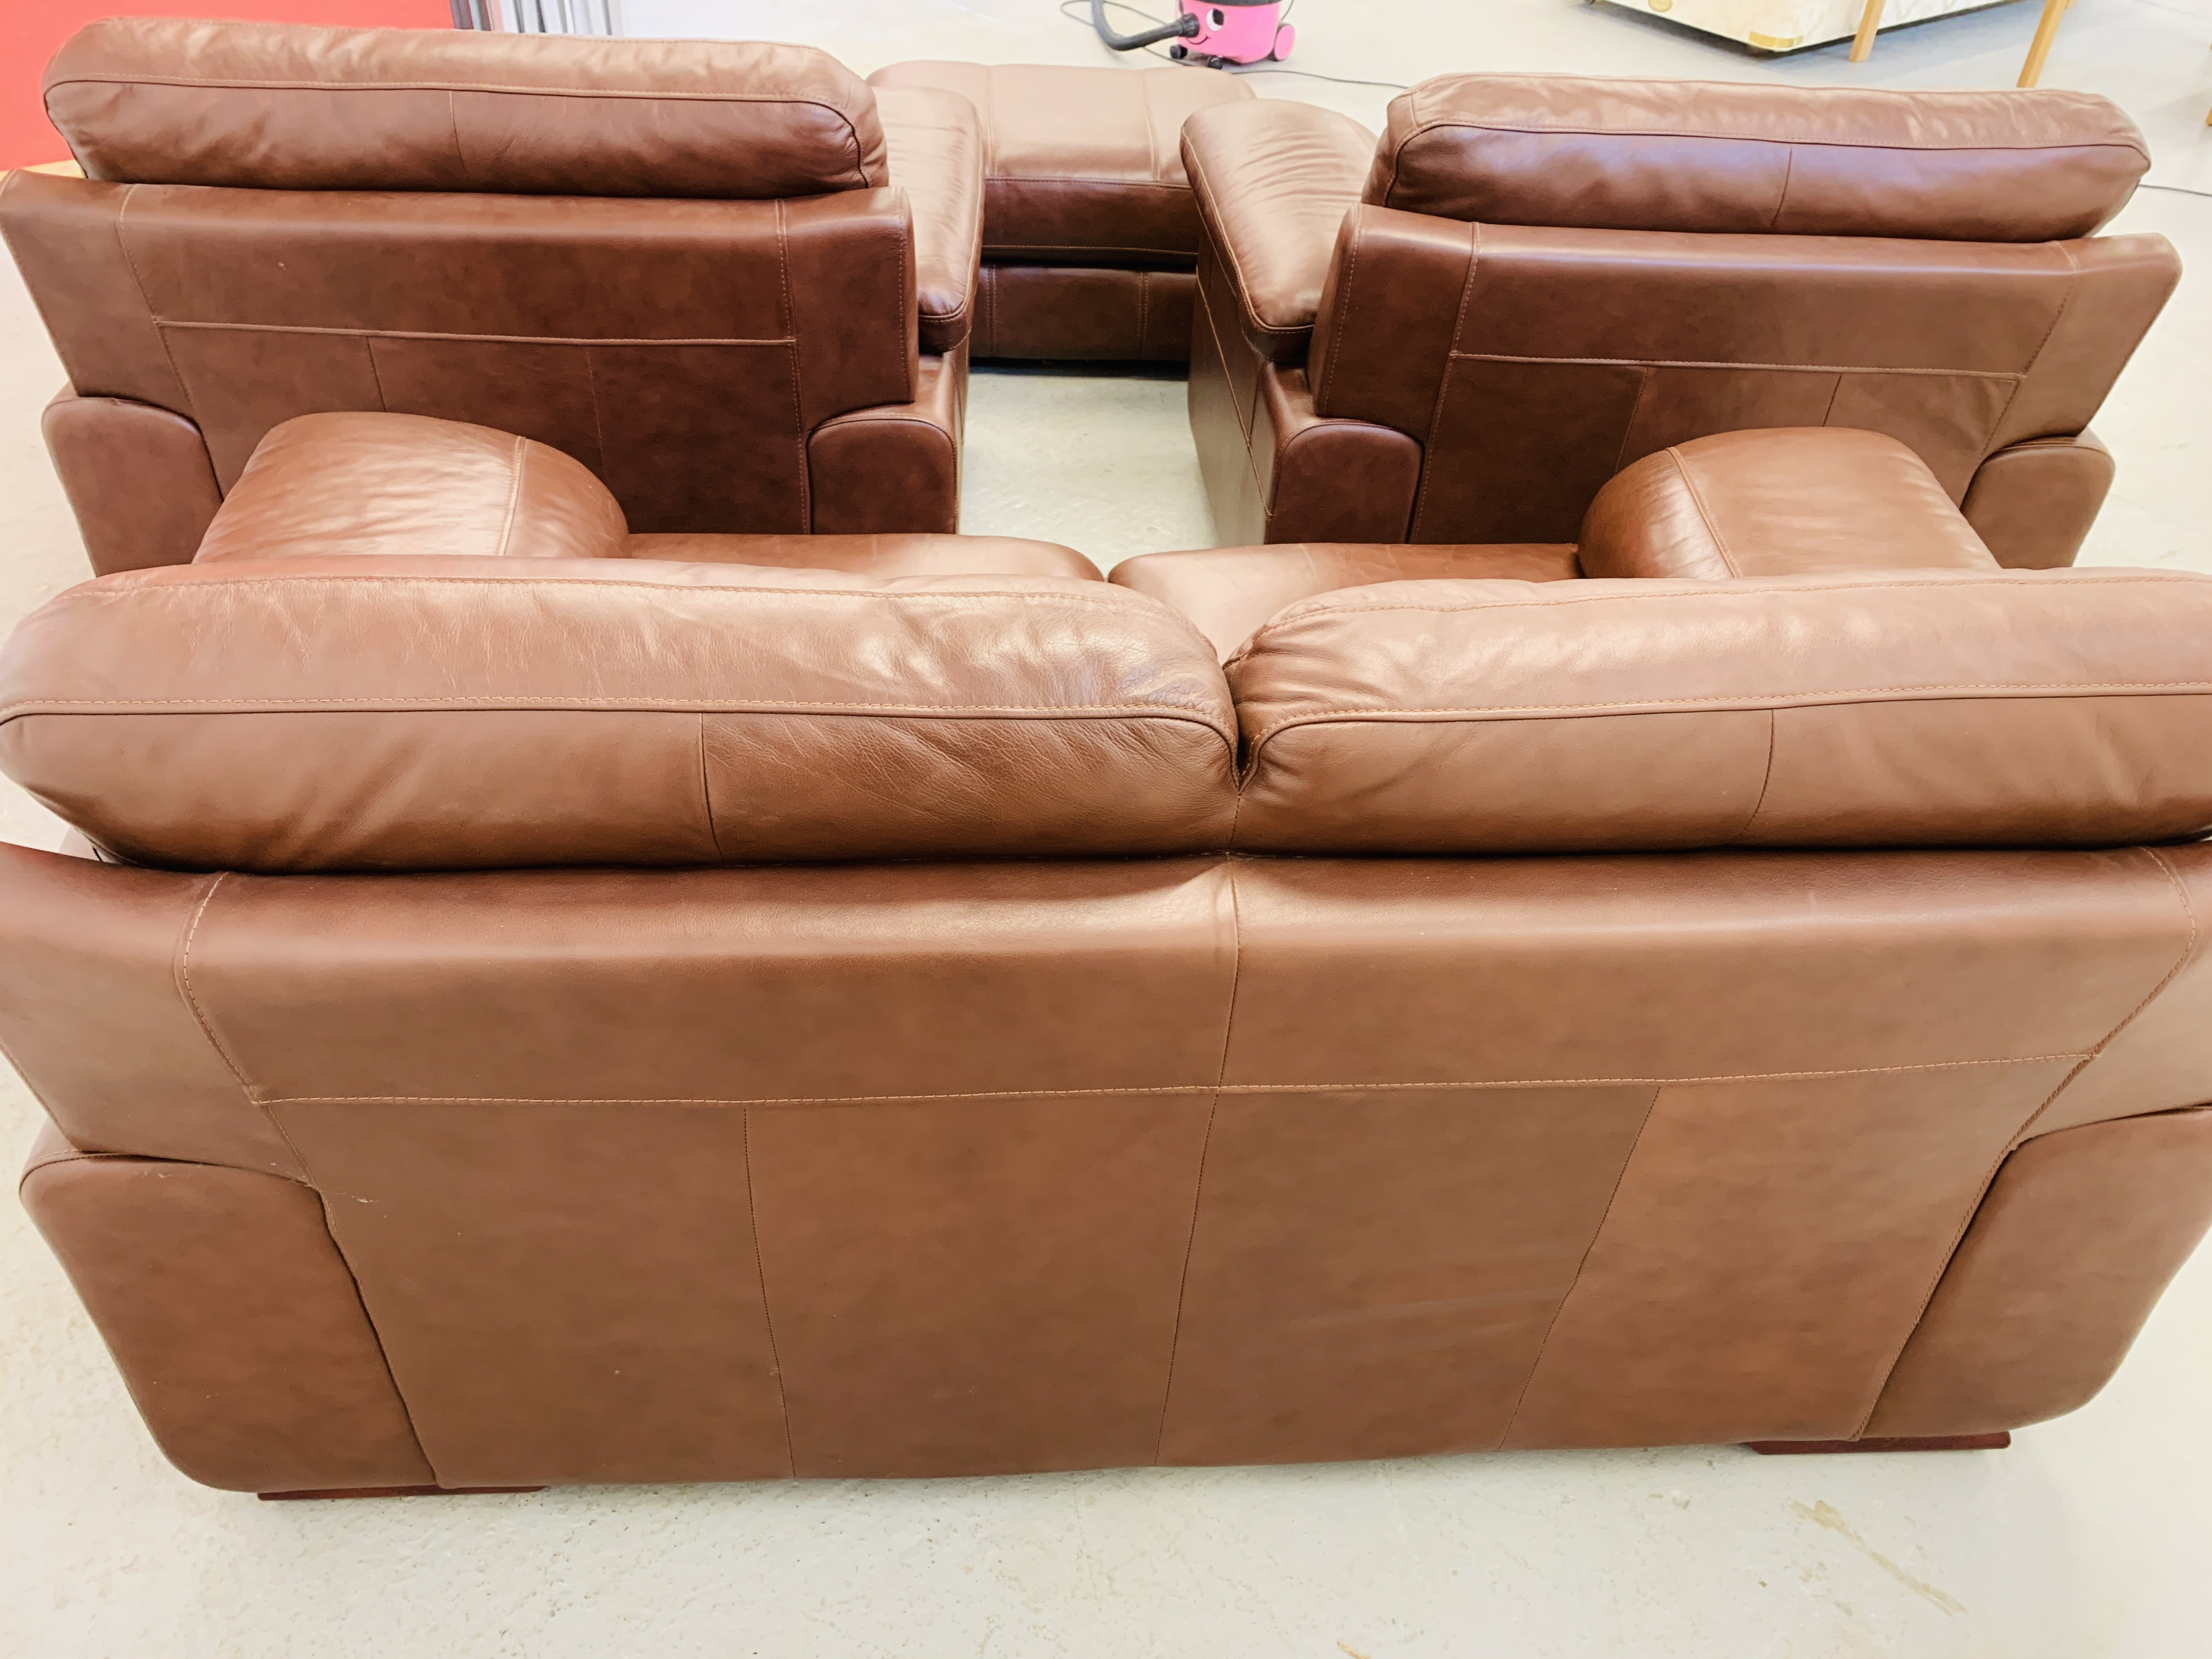 A GOOD QUALITY TAN LEATHER THREE PIECE LOUNGE SUITE WITH MATCHING POUFFE - Image 17 of 17